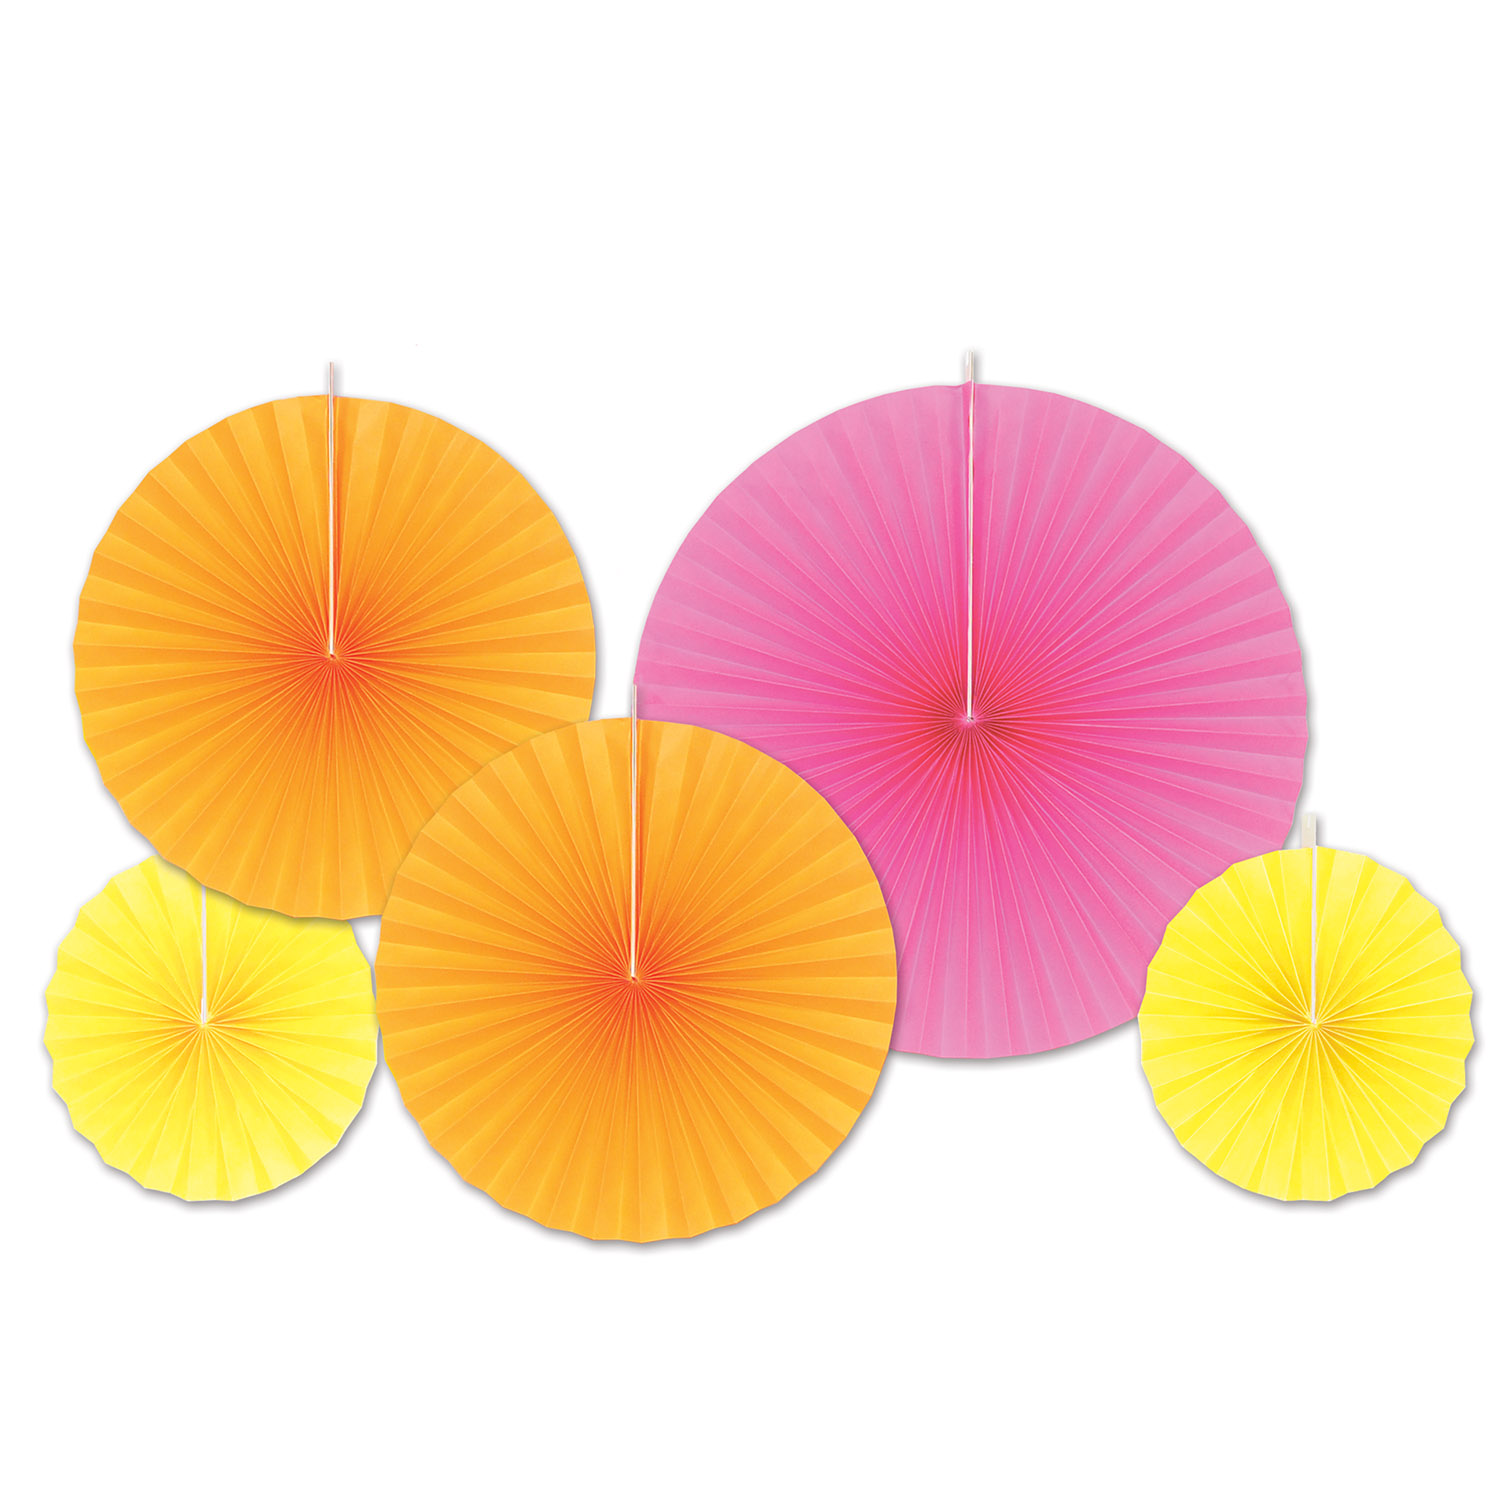 Accordion Paper Fans (Pack of 60) Accordion Paper Fans, decoration, easter, new years eve, yellow, orange, neon pink, wholesale, inexpensive, bulk